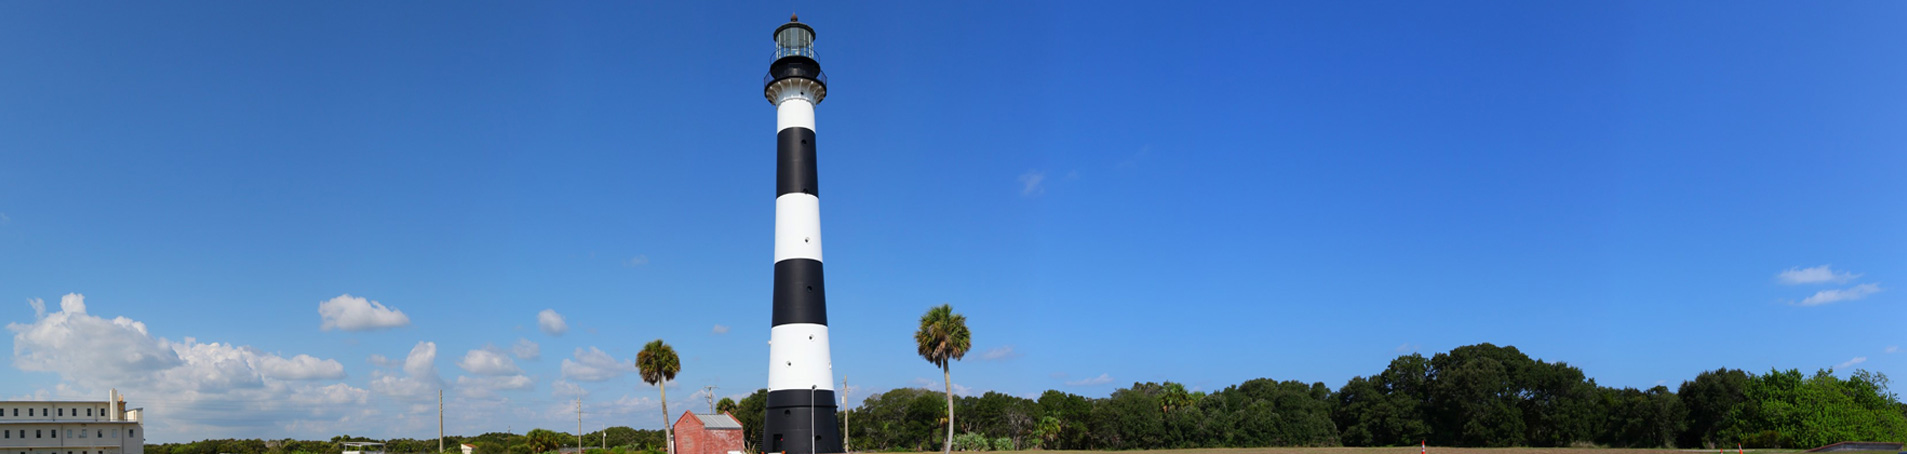 The historic Cape Canaveral Light on Cape Canaveral Air Force Station in Florida, first built in 1848.